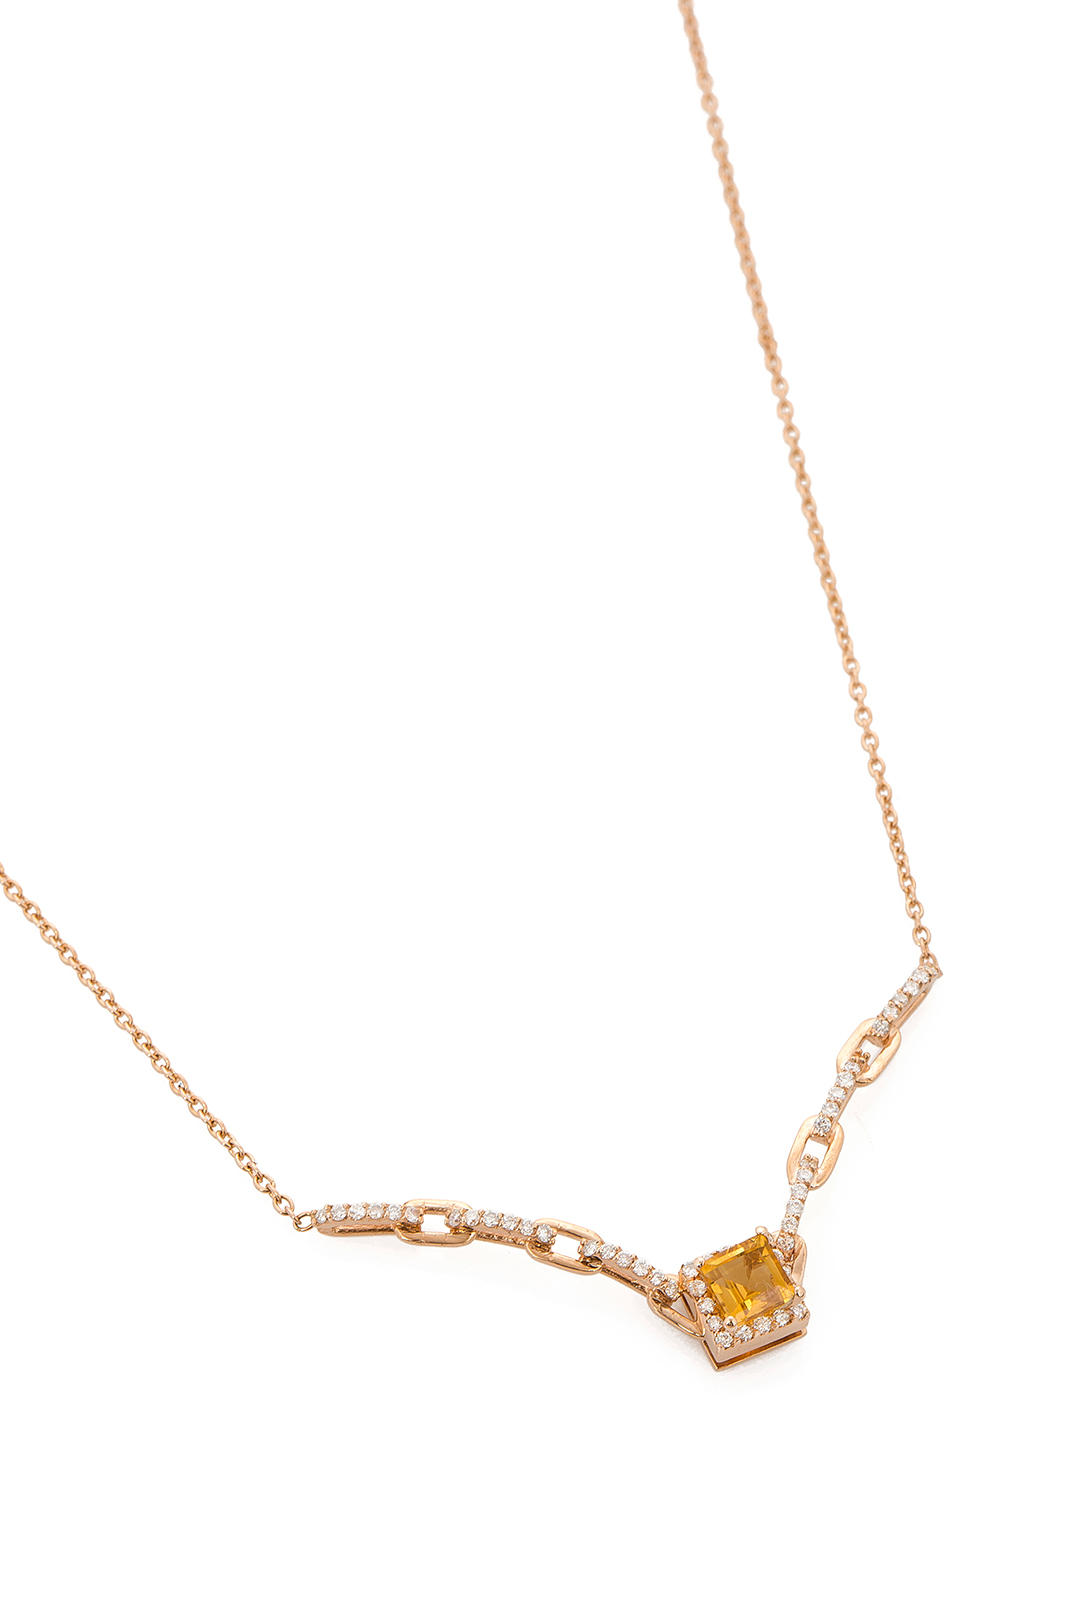 CITRIN AND DIAMOND NECKLACE